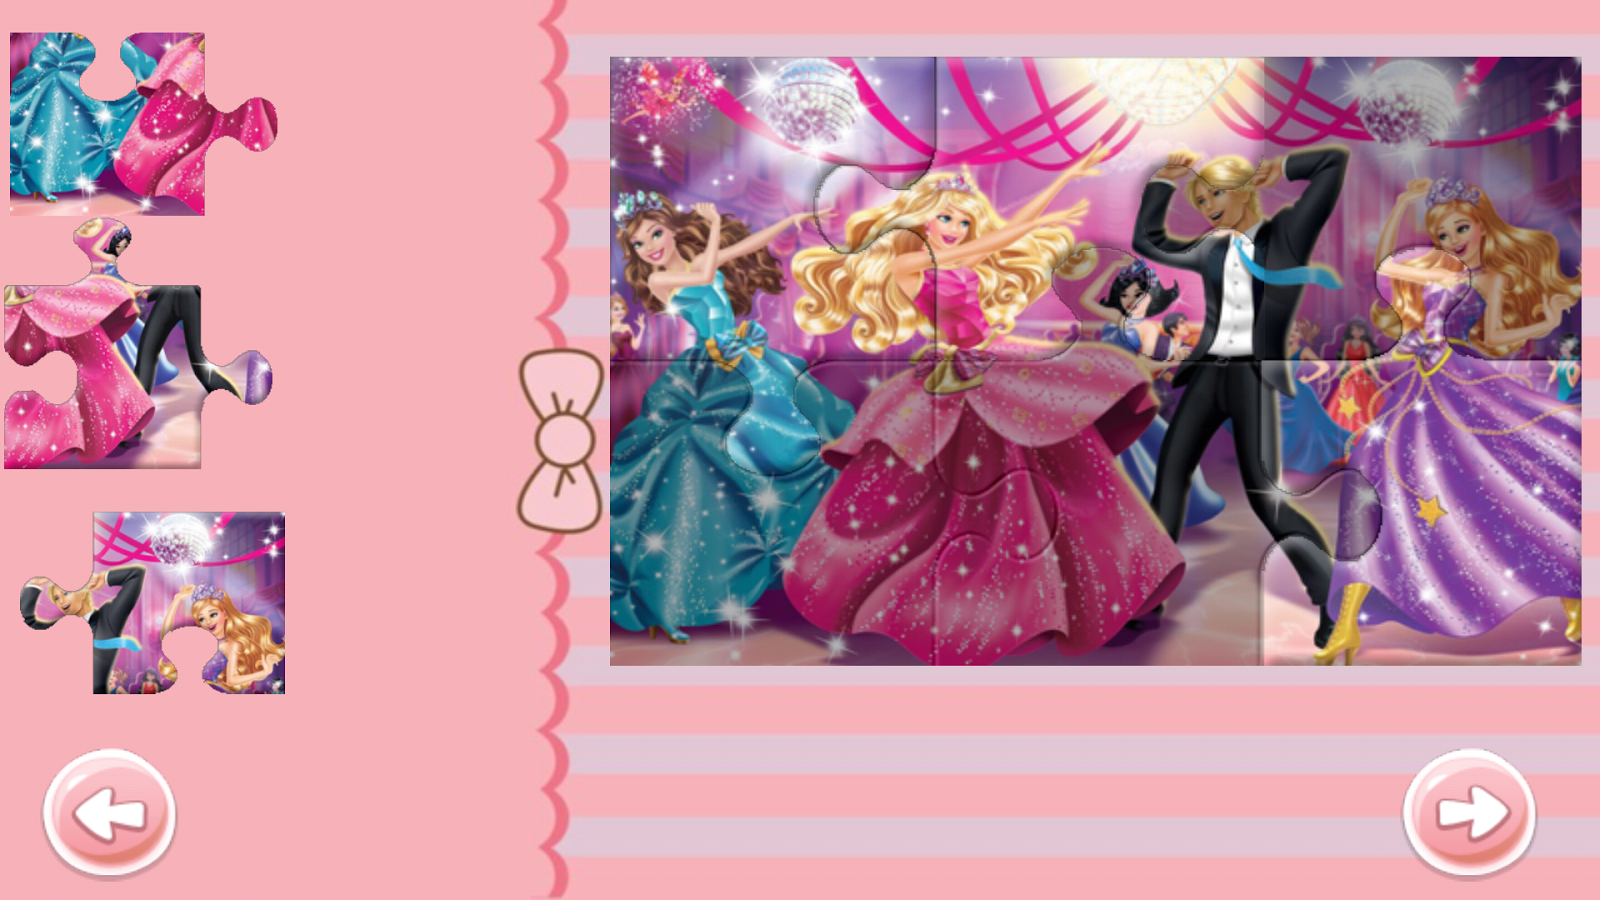 Princess-Puzzle-For-Toddlers-2 15